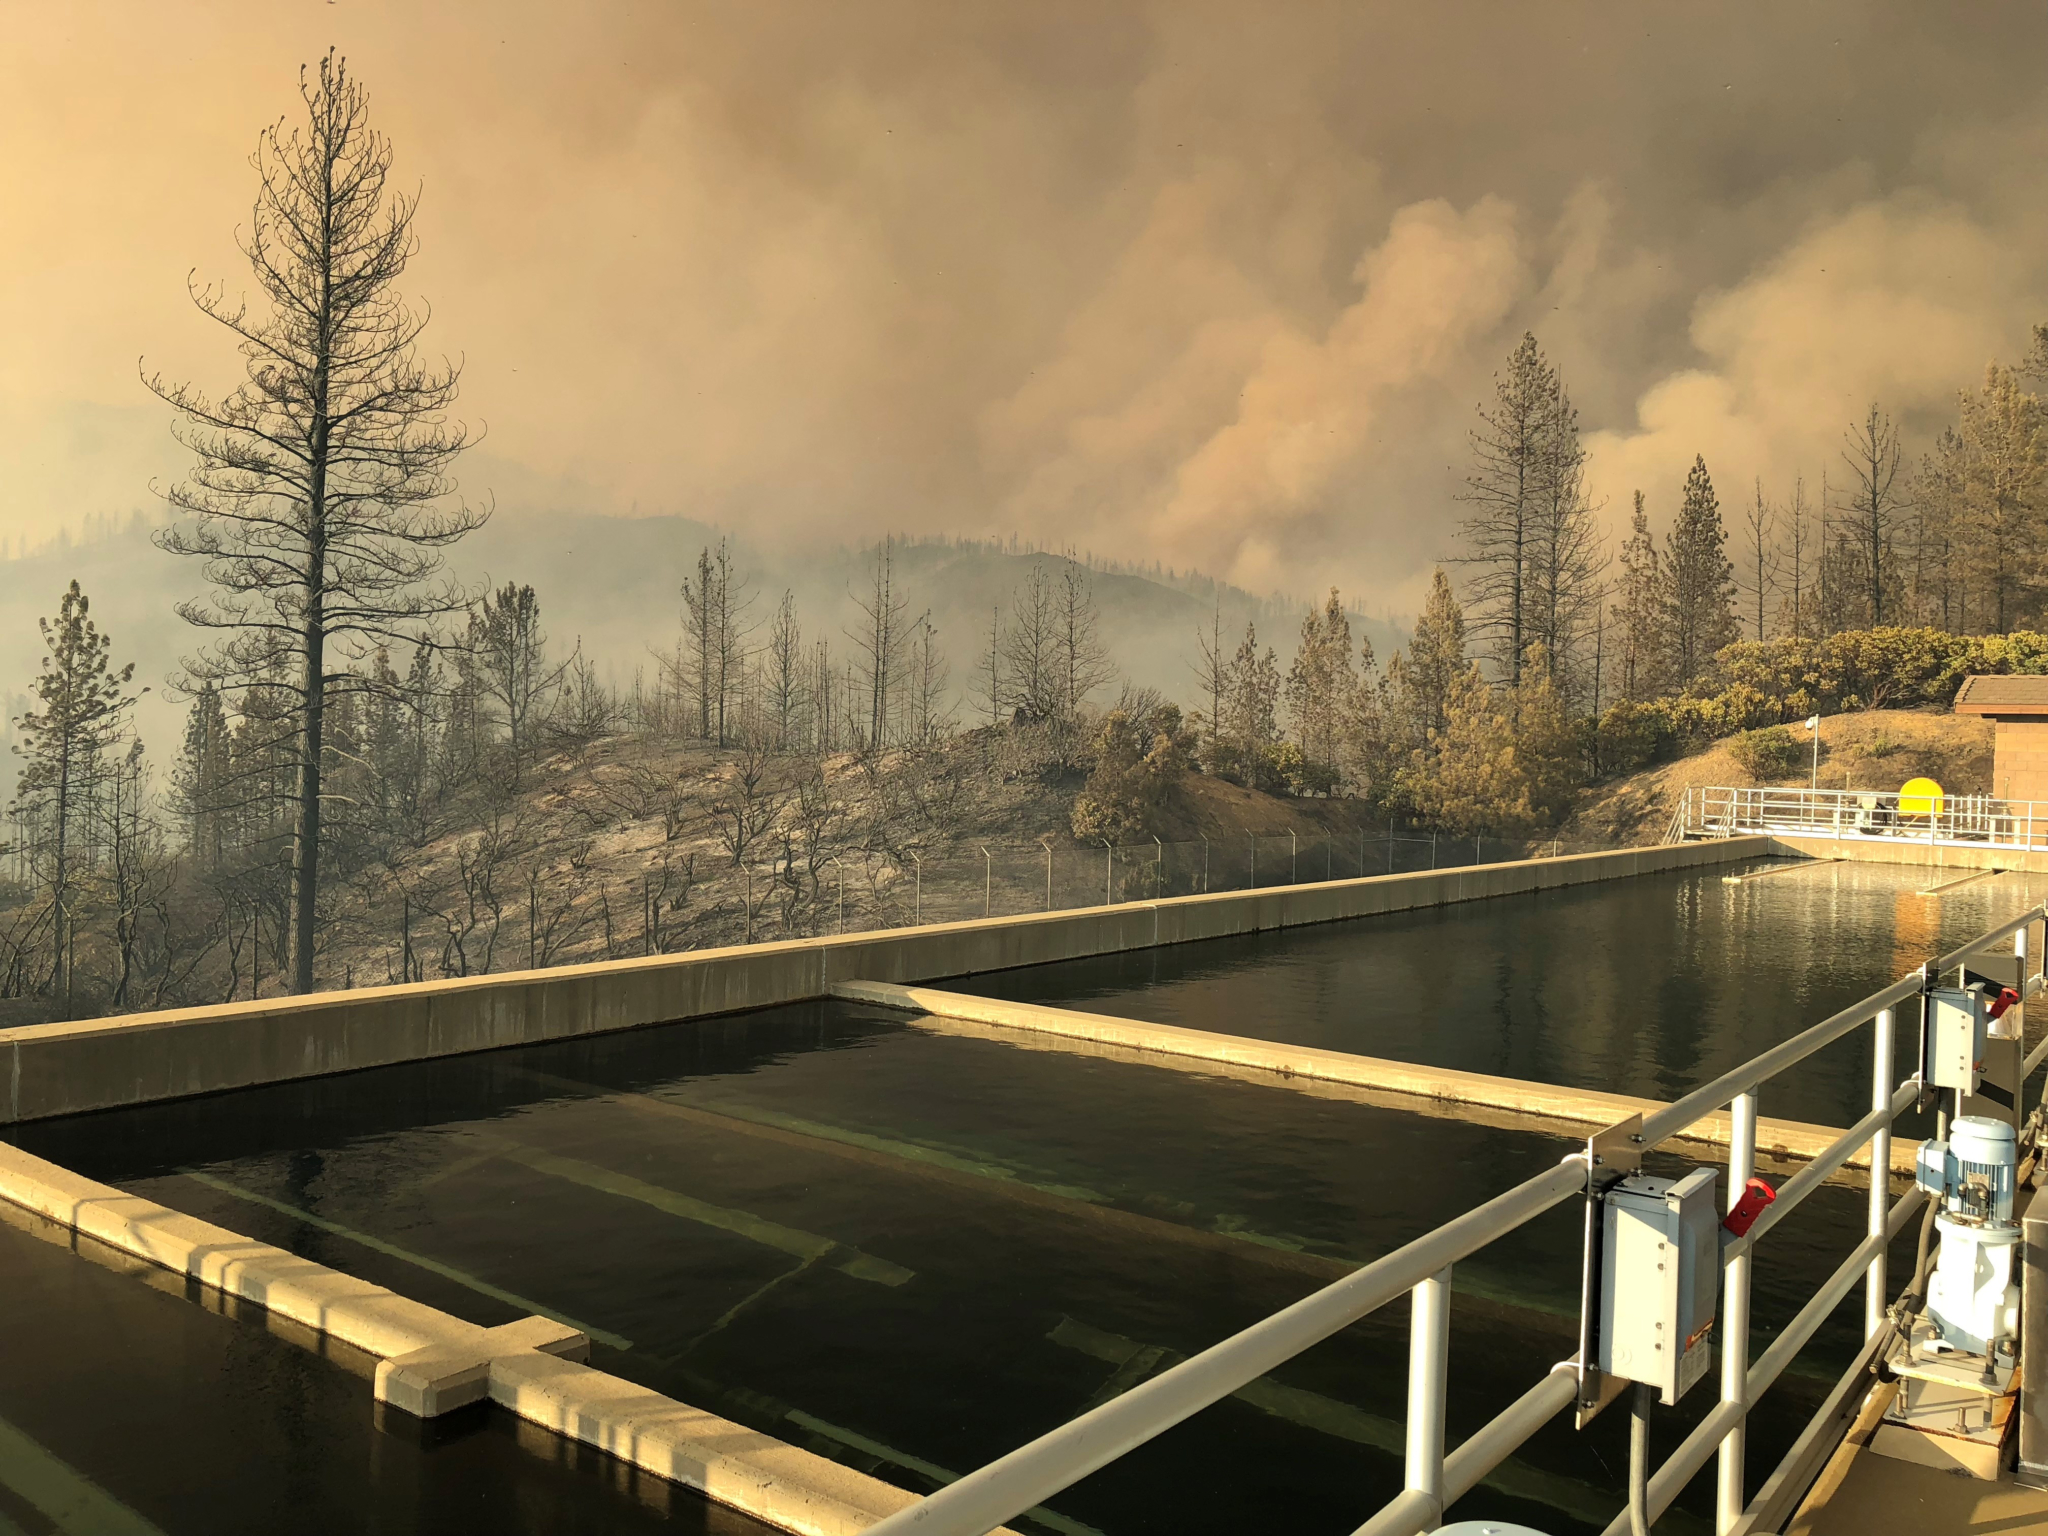 Fire surrounding Buckeye Water Treatment Plant in Redding, California. (Photo by Richard Hinrichs of the State Water Resources Control Board)